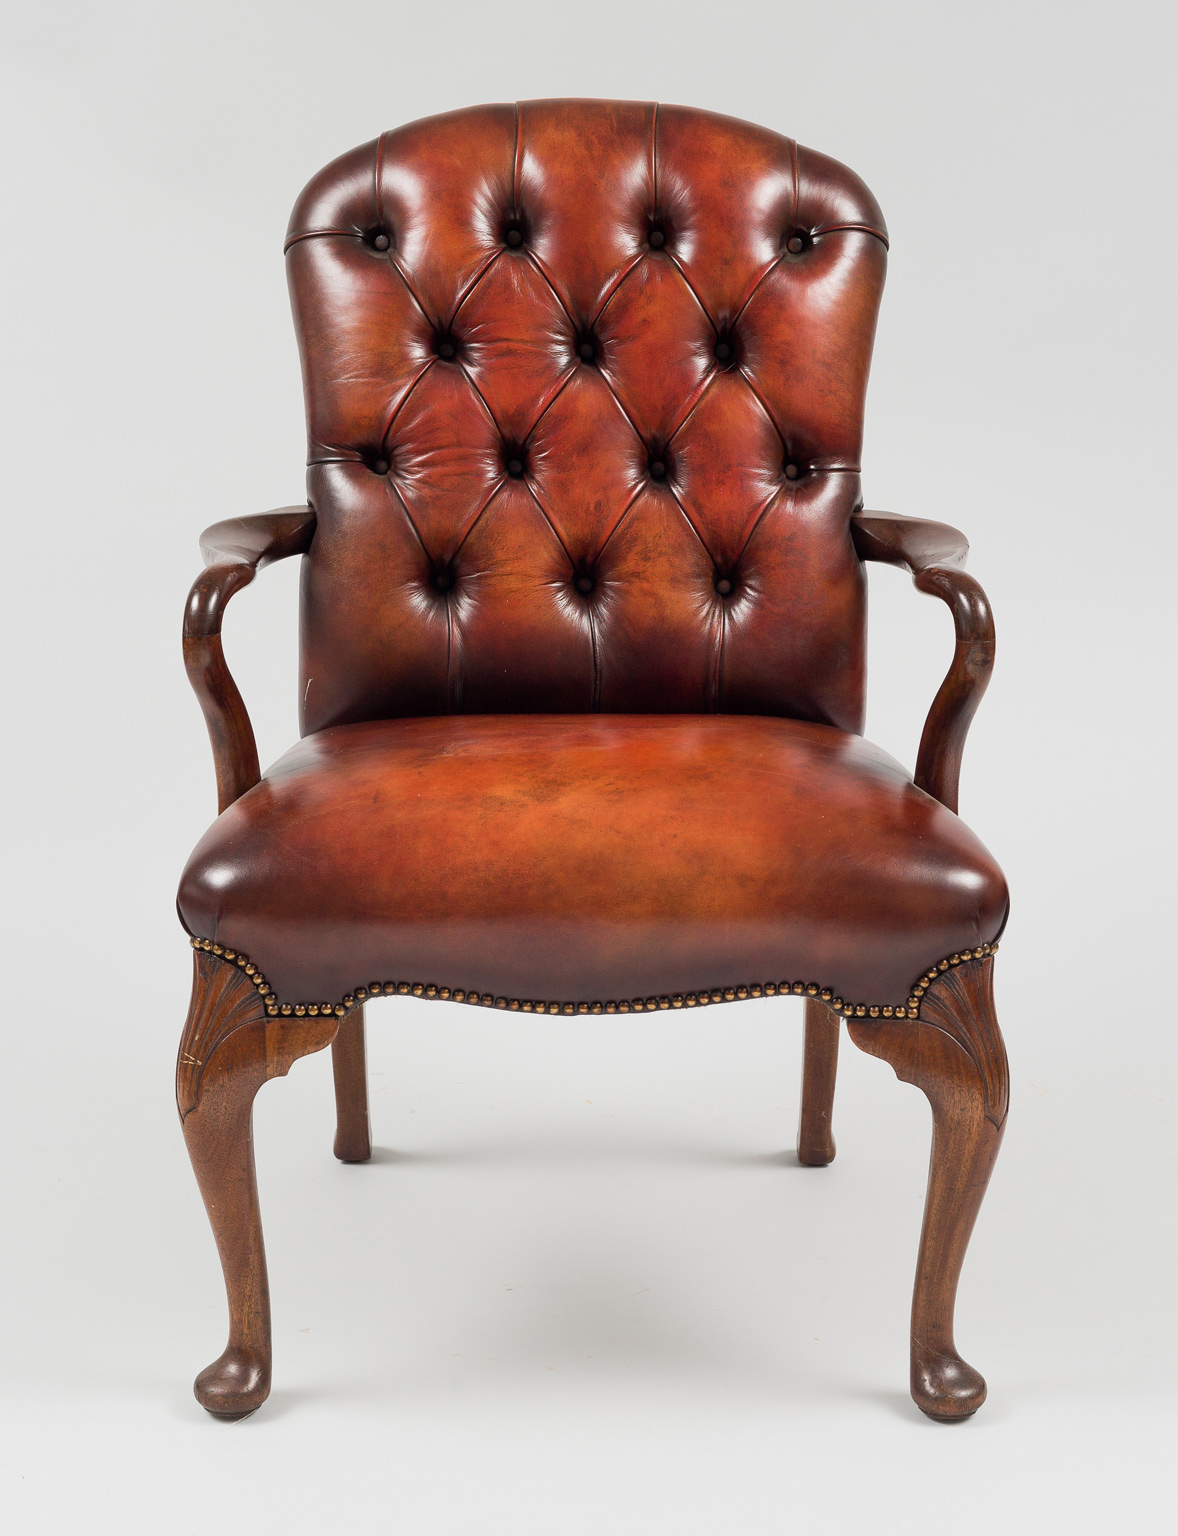 antique rocking chair leather seat swivel office no arms english mahogany shepherd's crook armchair  antique armchairs